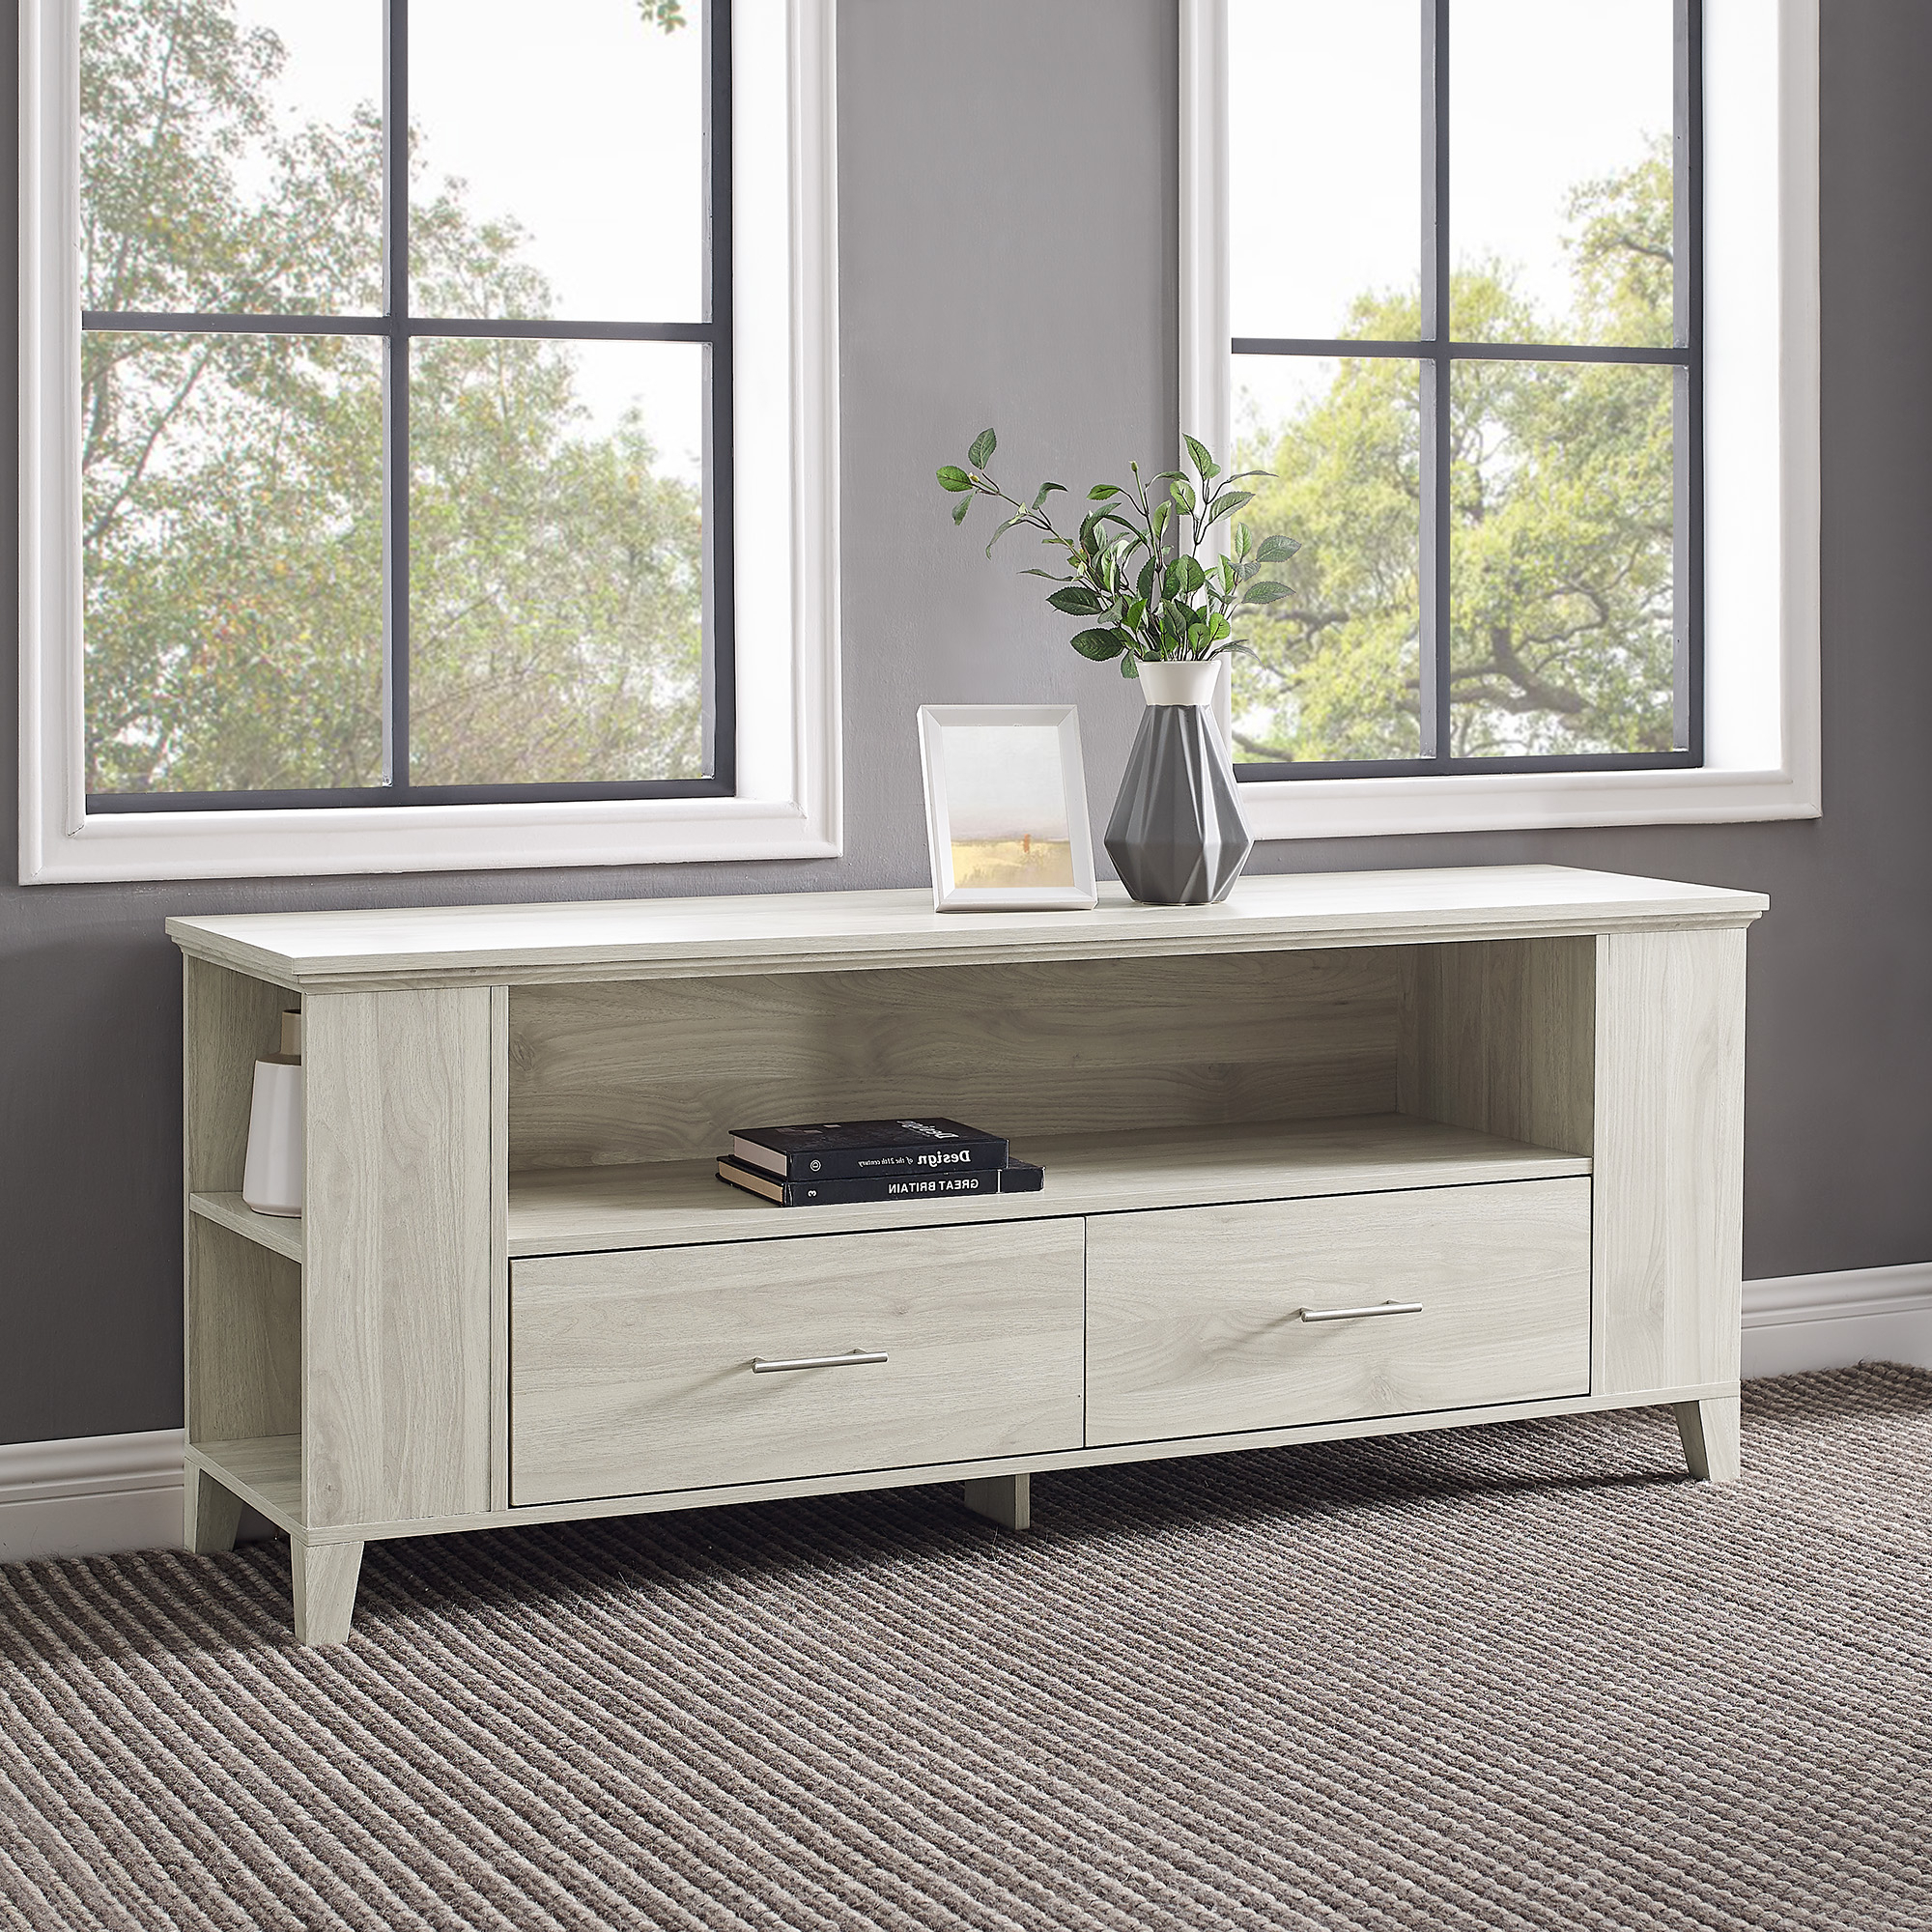 """Most Recent Shilo Tv Stands For Tvs Up To 65"""" Pertaining To Birch Tv Stand With Adjustable Shelves For Tvs Up To (View 7 of 20)"""